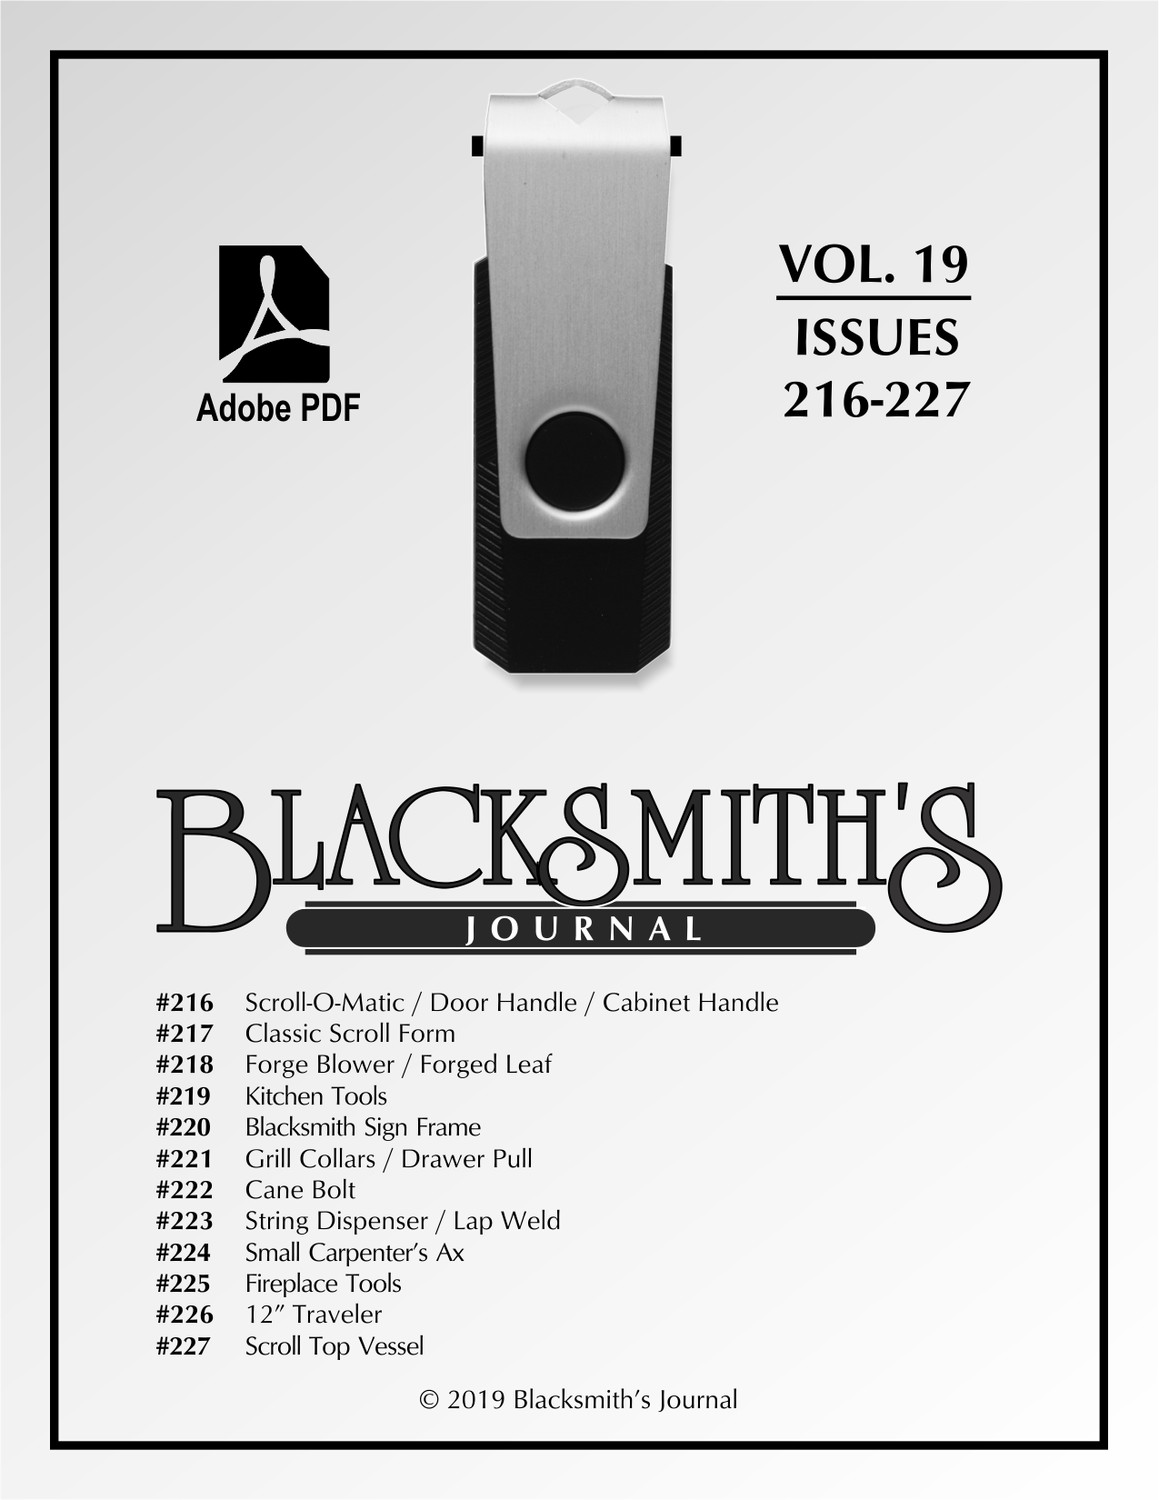 USB Flash Drive - Blacksmith's Journal Vol. 19